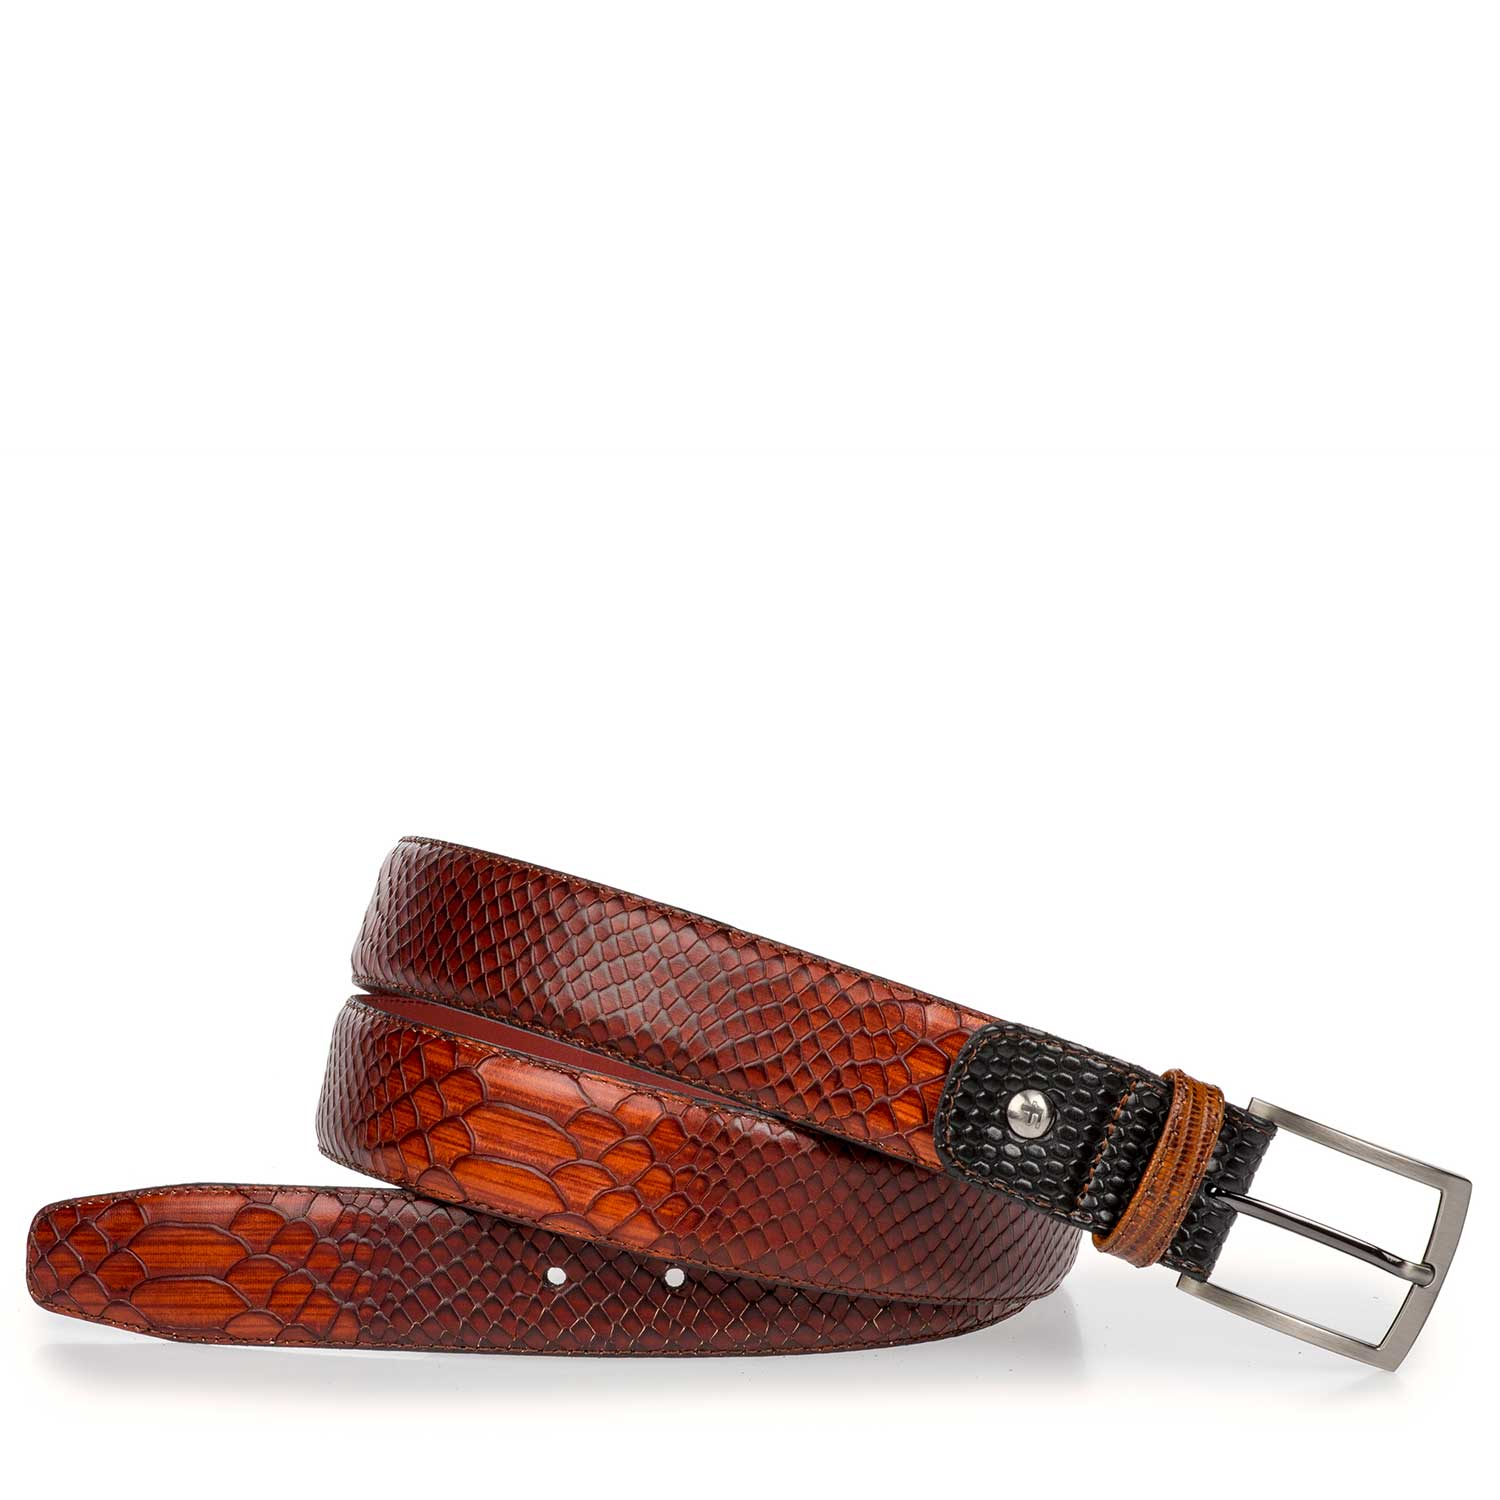 75188/11 - Dark cognac-coloured leather belt with snake print